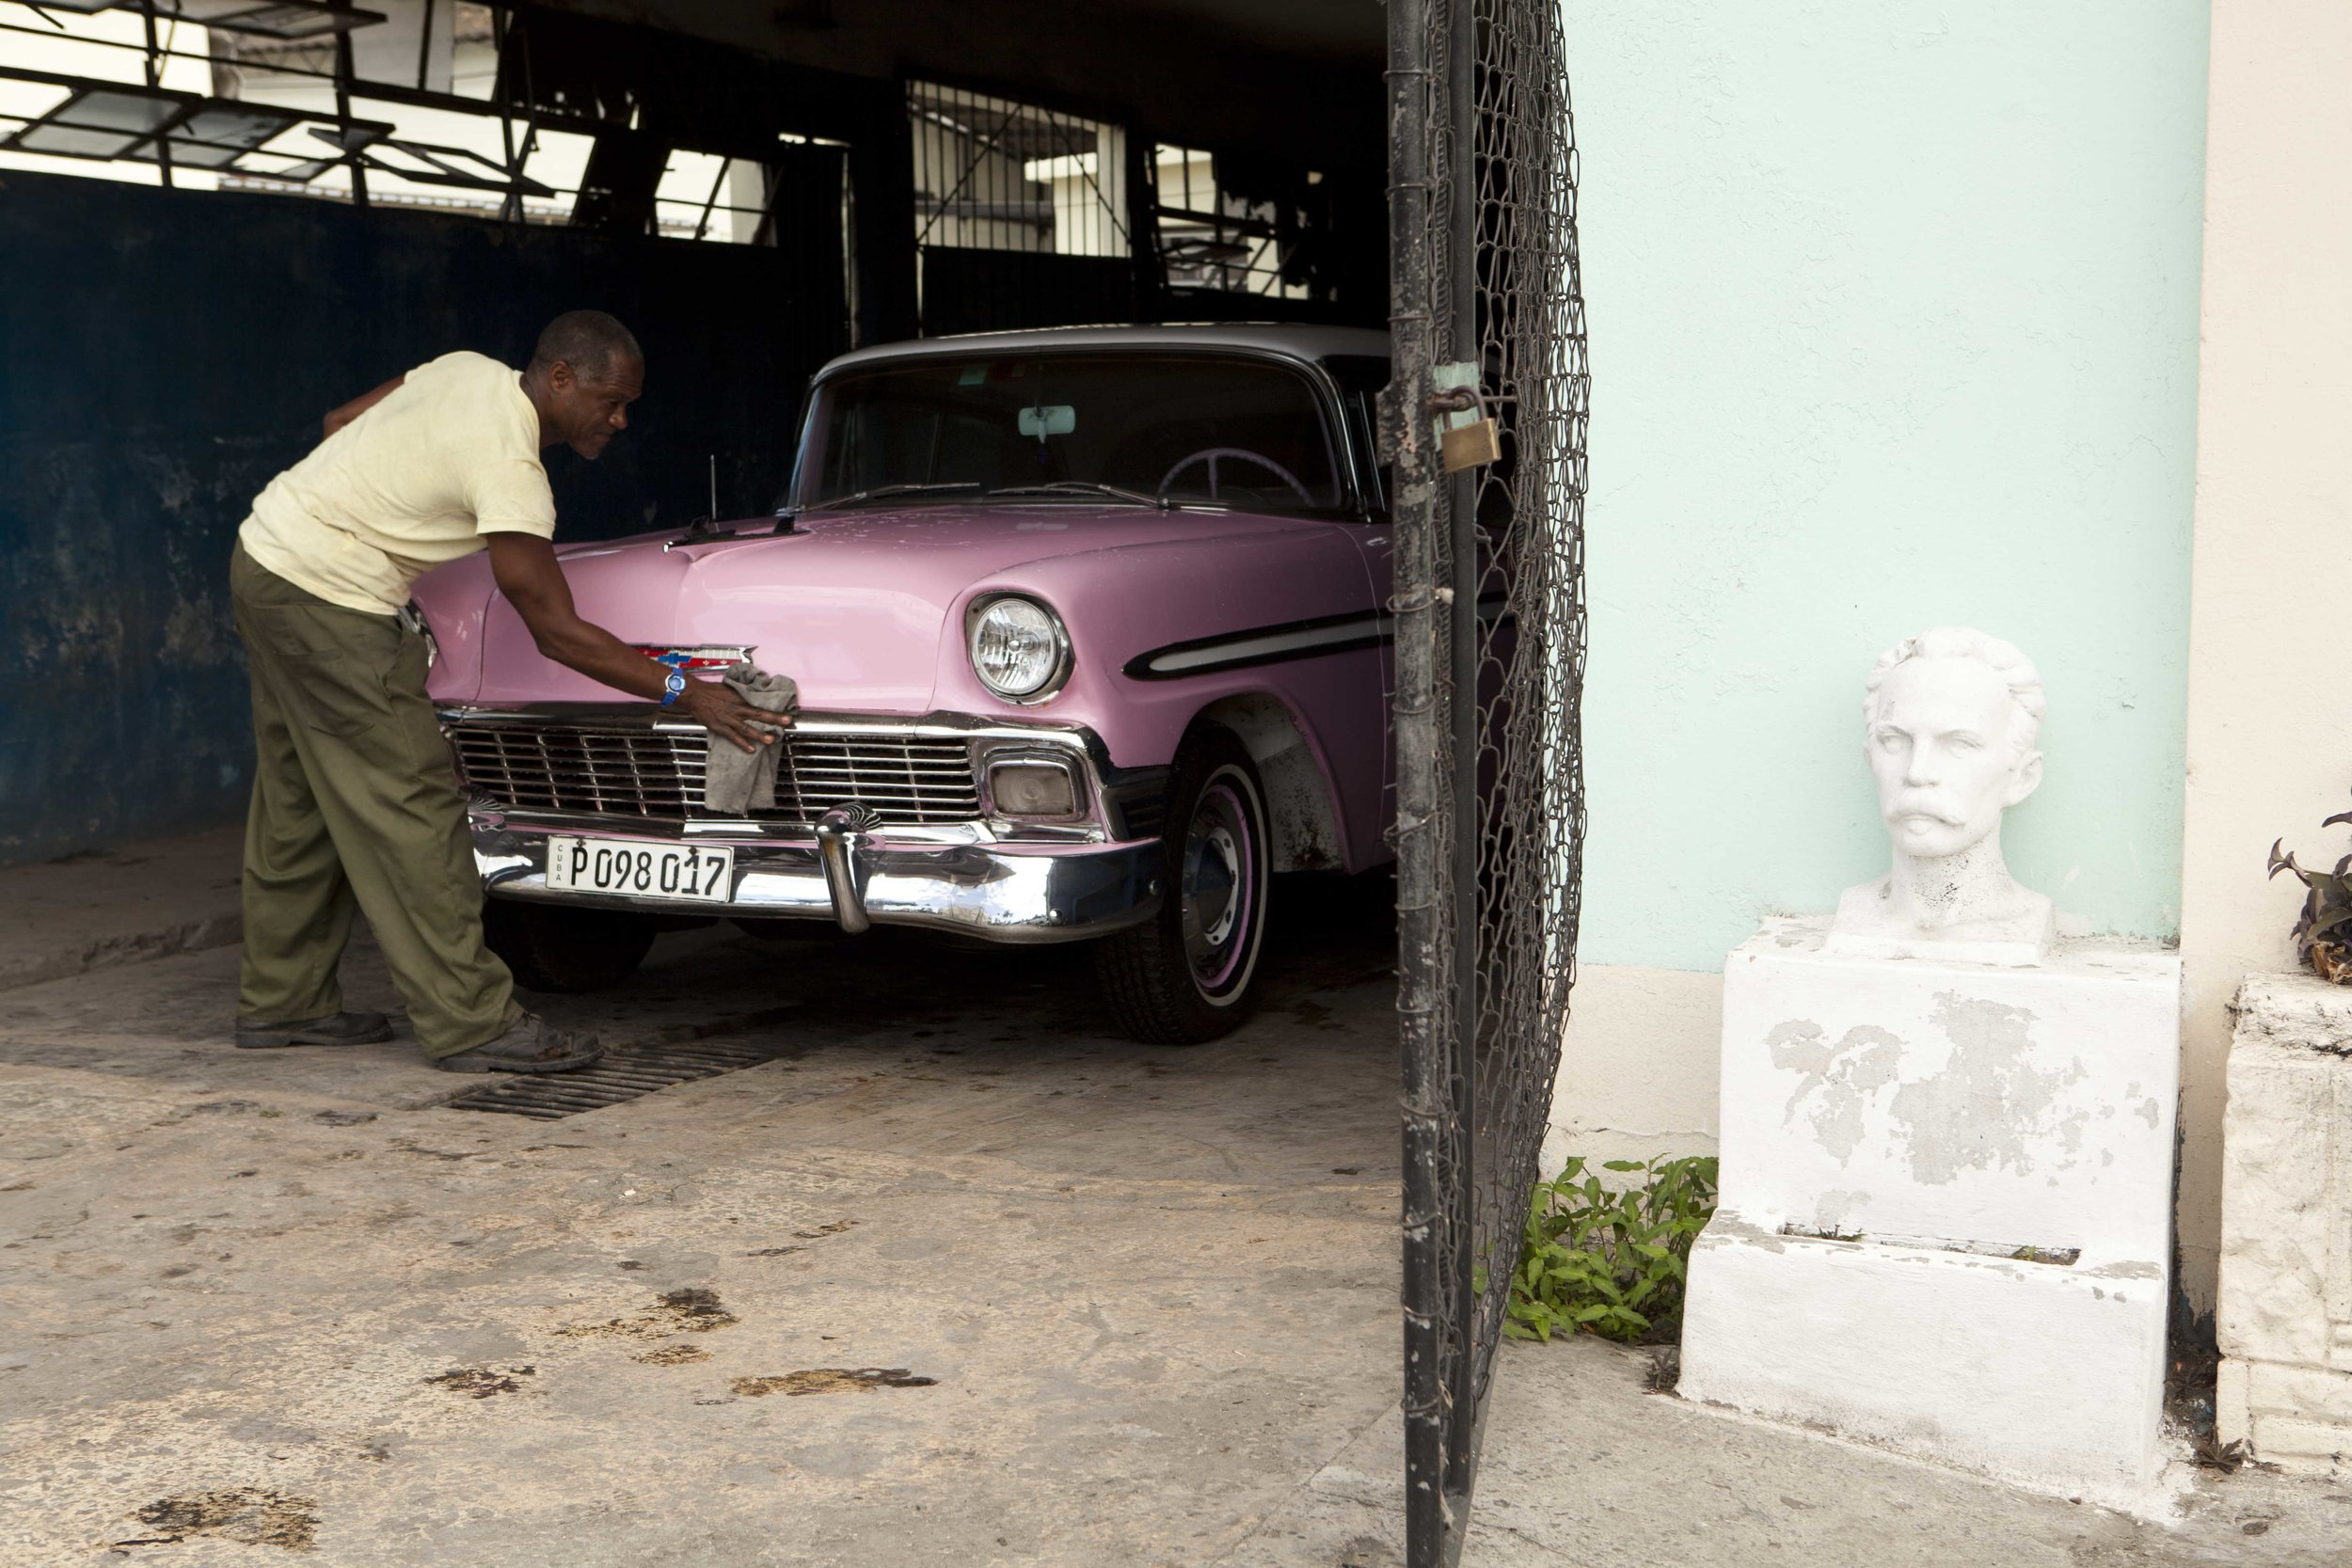 by Justin Lanier  A man cleaning a classic Chevy in Miramar, Havana  2015